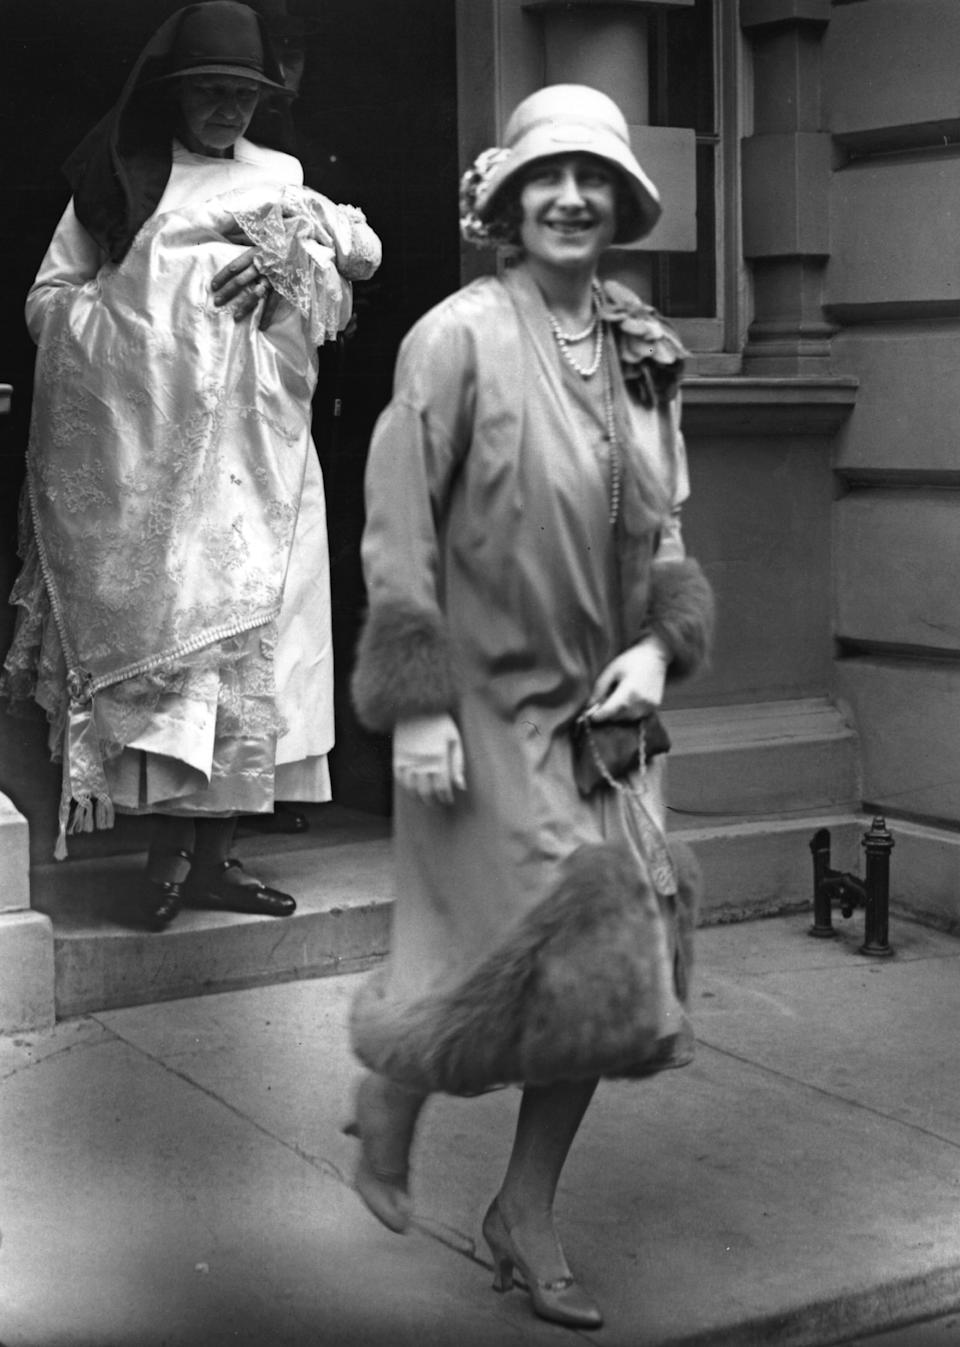 29th May 1926:  The Duchess of York (1900 - 2002) leaving 17 Bruton Street, on her way to the christening of her daughter Princess Elizabeth.  (Photo by E. Bacon/Topical Press Agency/Getty Images)